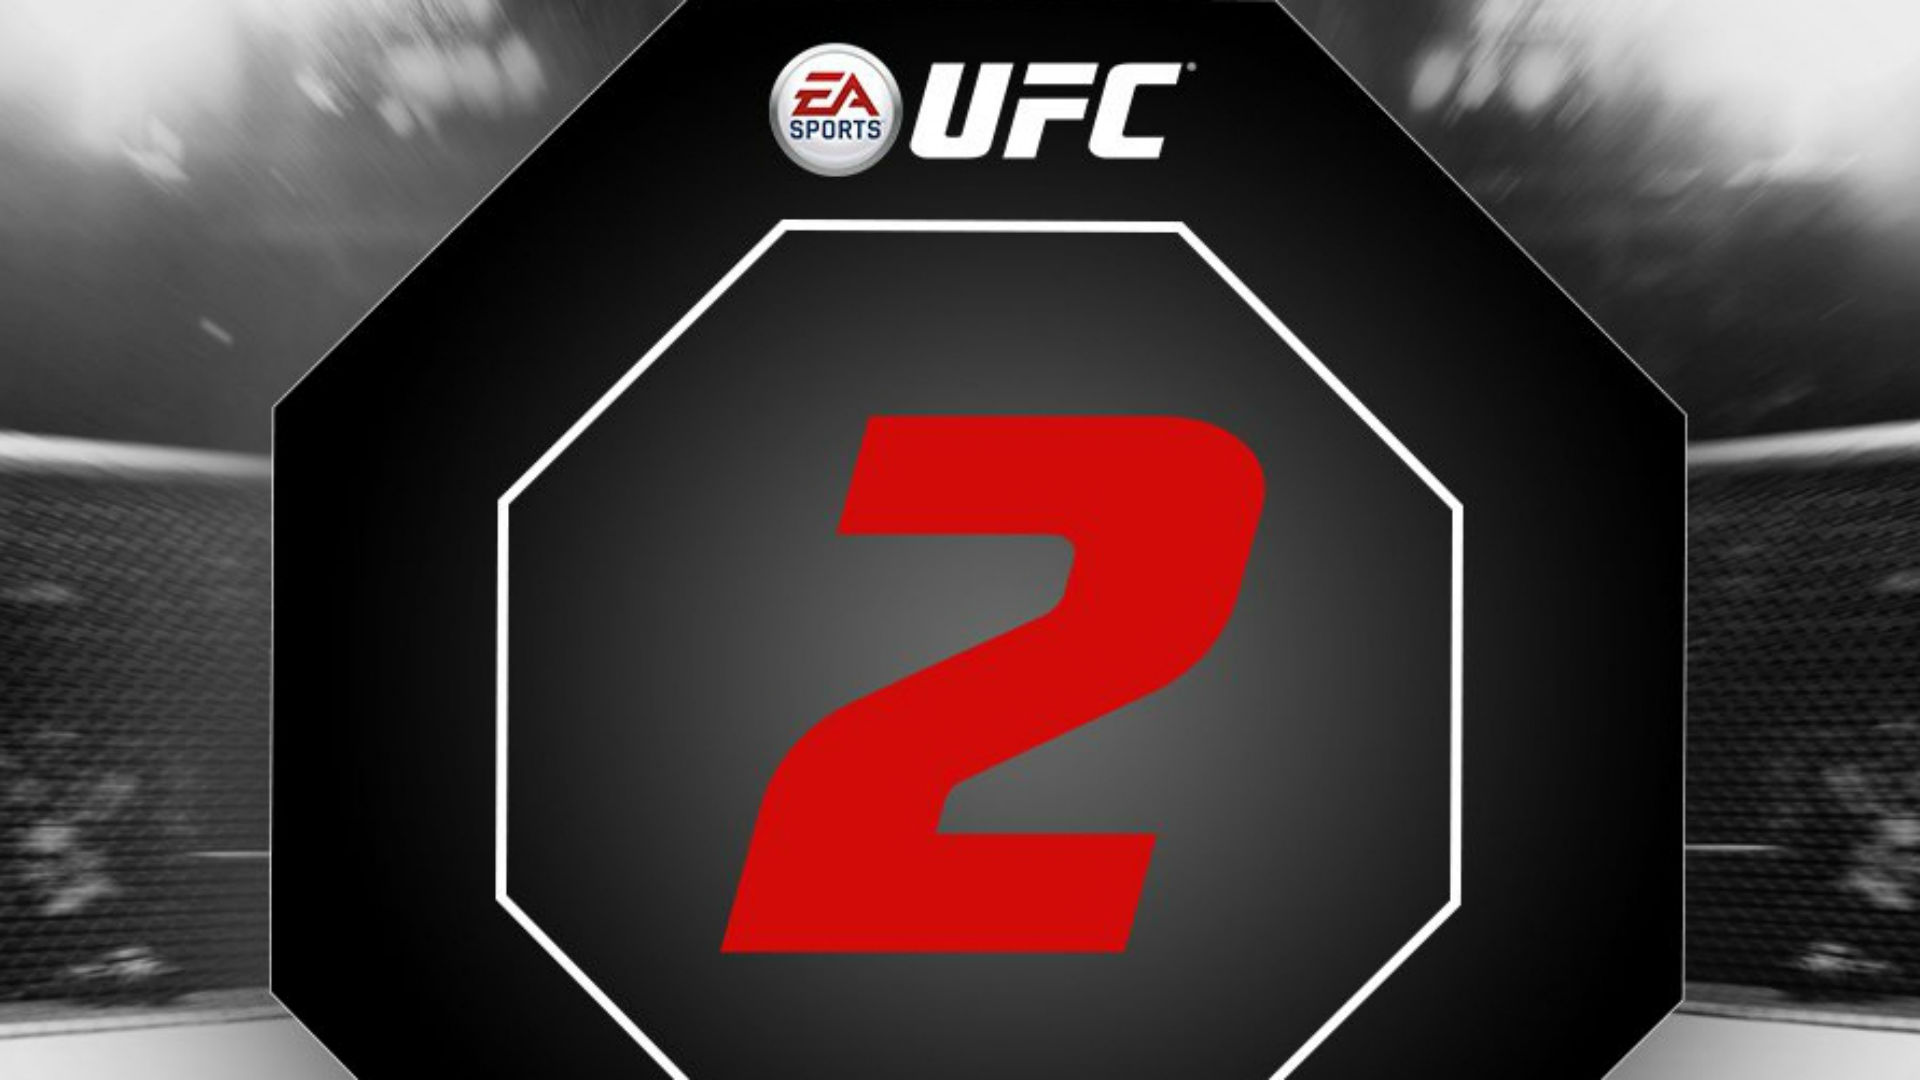 Ea sports ufc 2 announced coming spring 2016 to ps4 and xbox one ea sports ufc 2 announced coming spring 2016 to ps4 and xbox one mma sporting news biocorpaavc